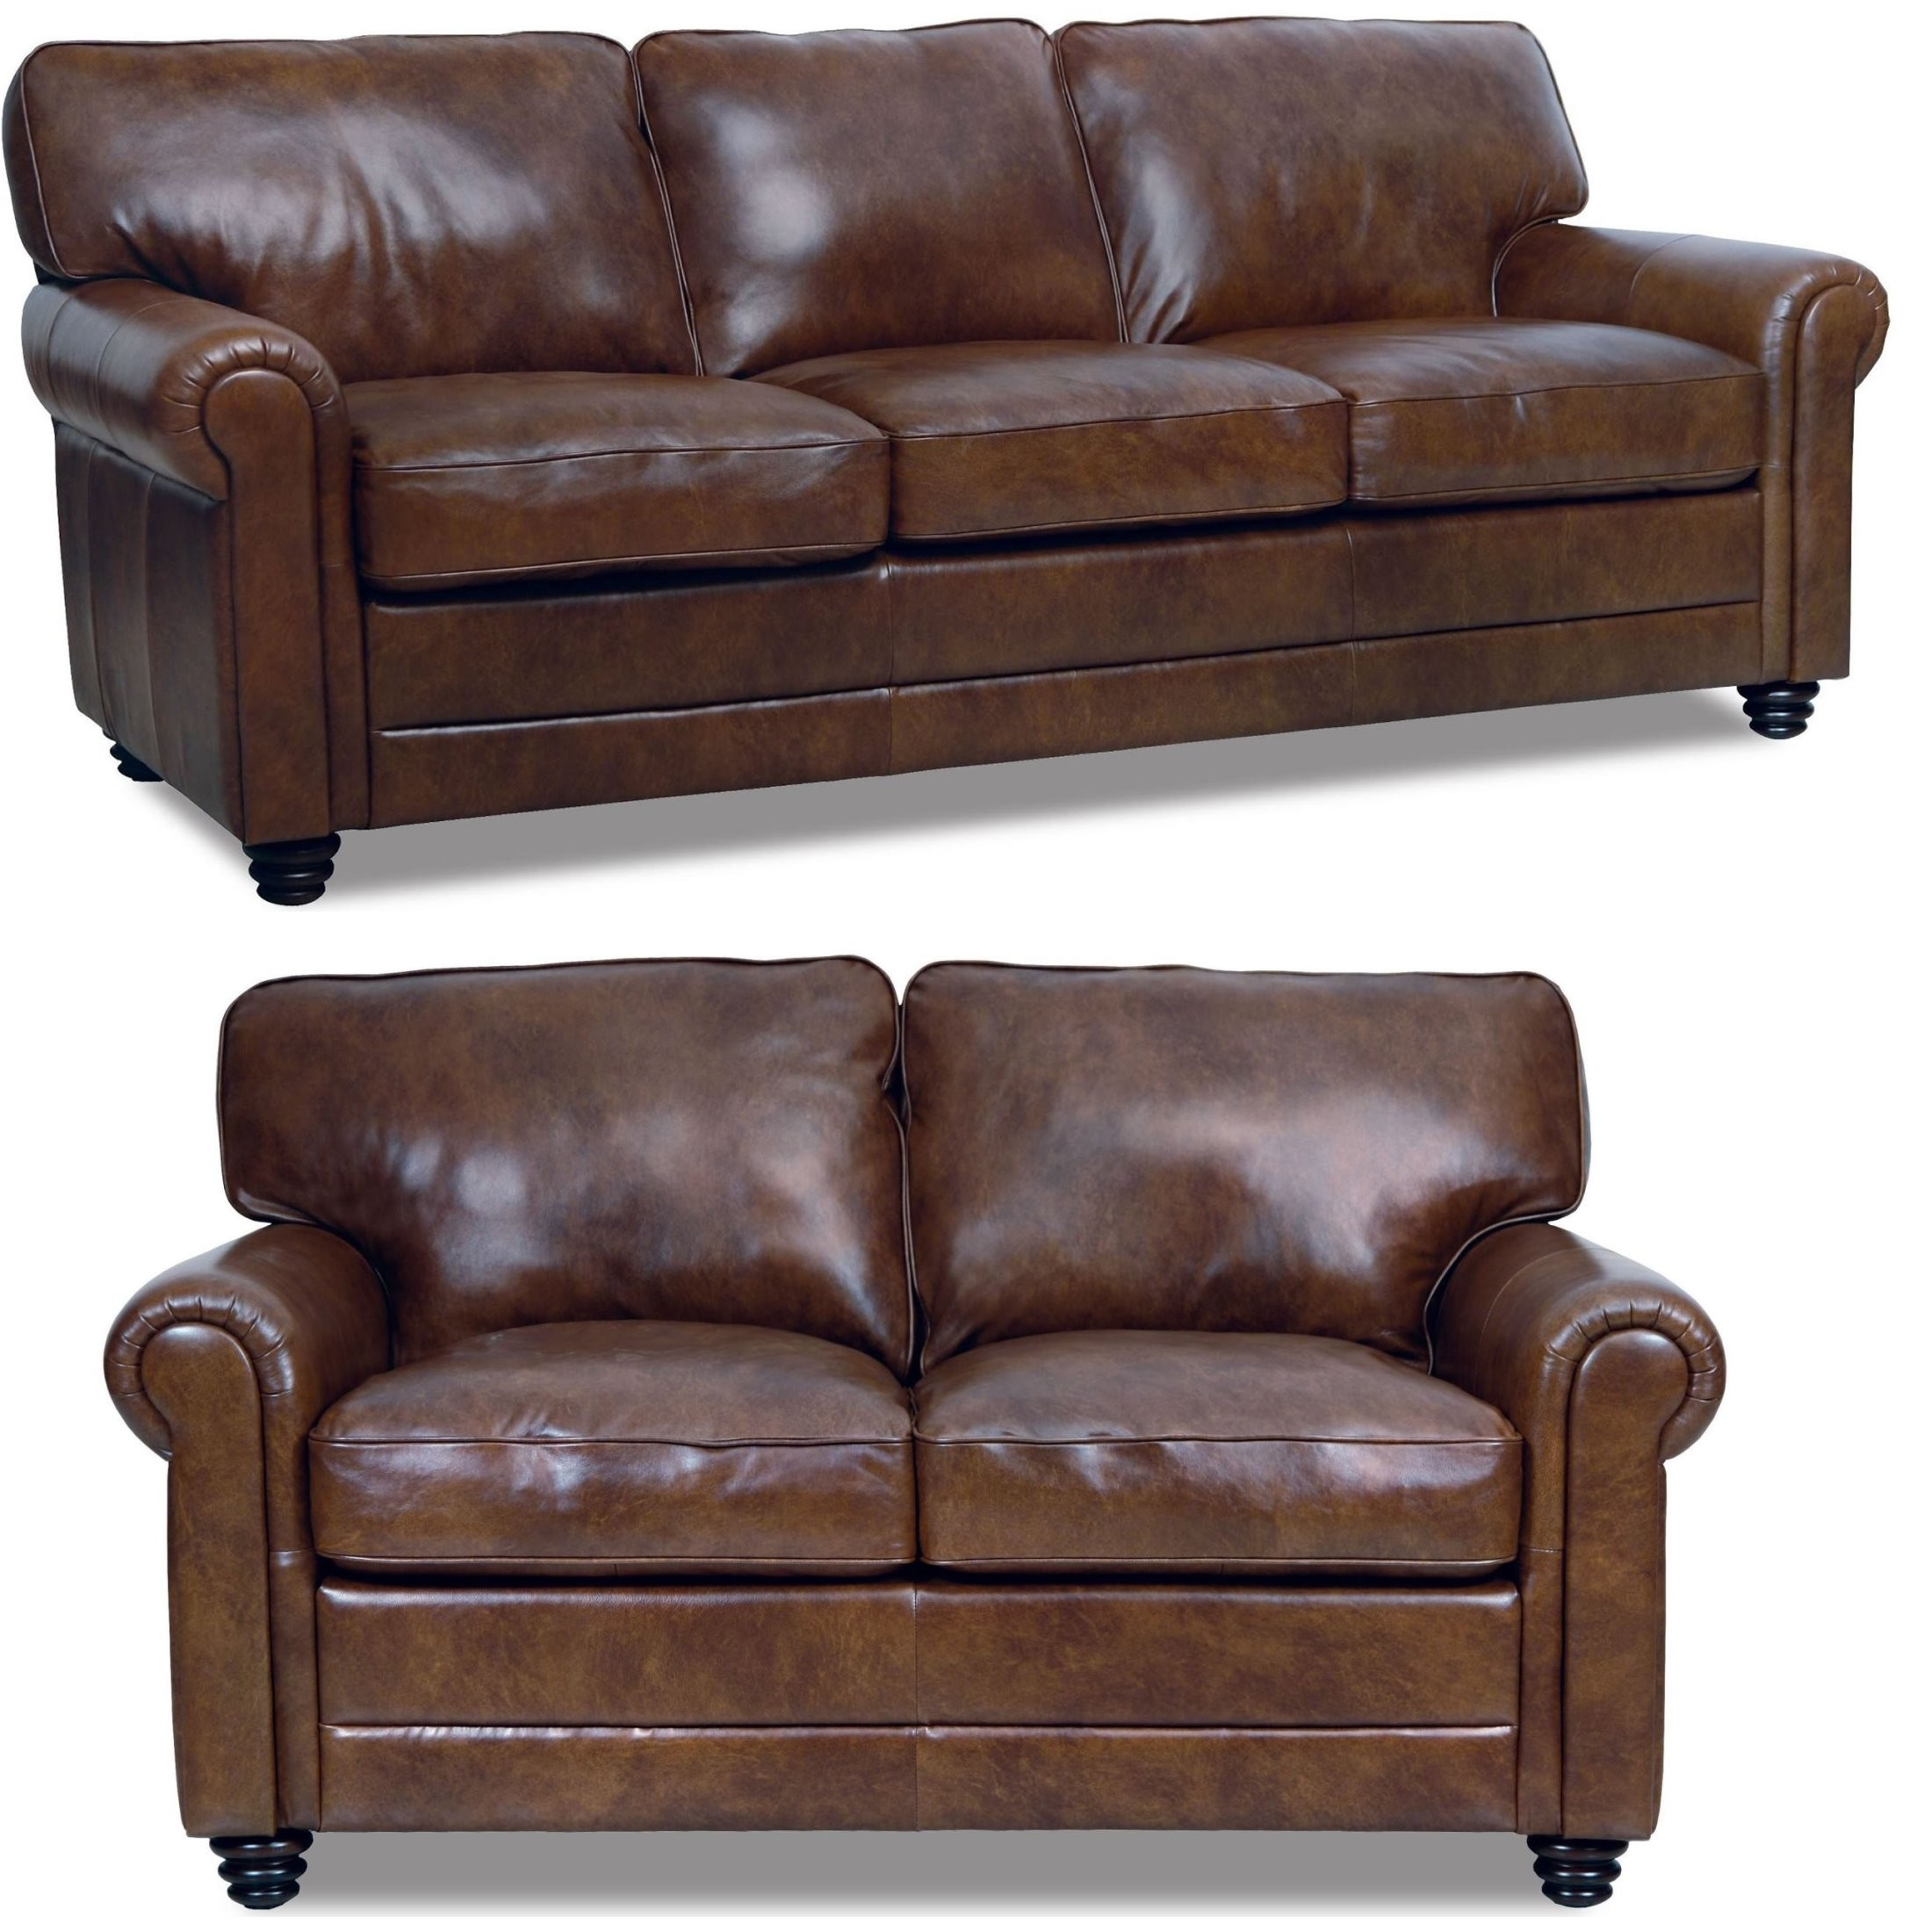 Andrew Italian Leather Living Room Set From Luke Leather (Andrew Within Andrew Leather Sofa Chairs (View 12 of 25)